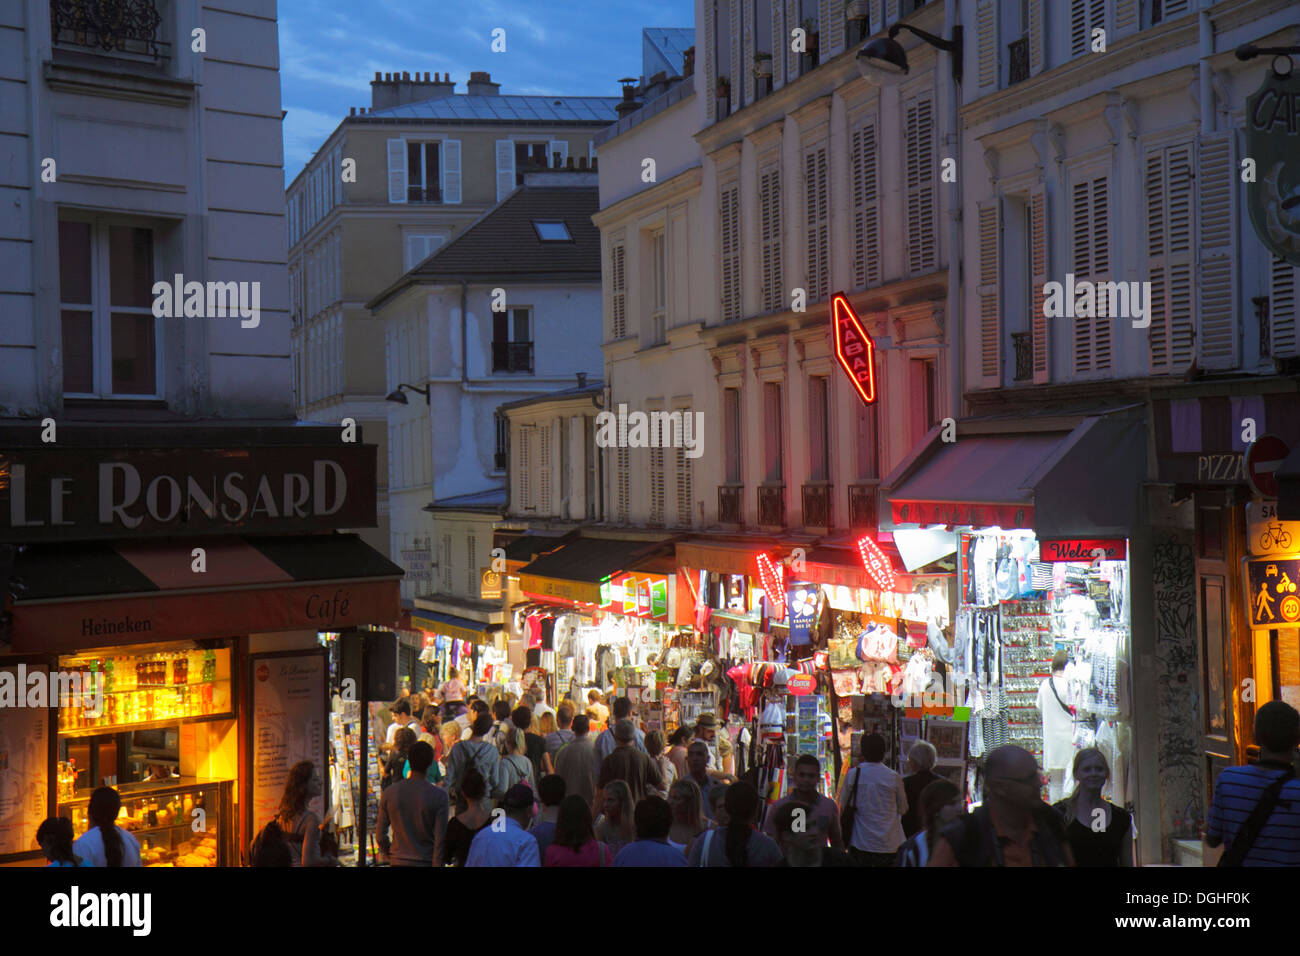 Paris France Europe French 18th arrondissement Montmatre Place Saint St. Pierre Rue de Steinkerque night nightlife shopping Haus - Stock Image